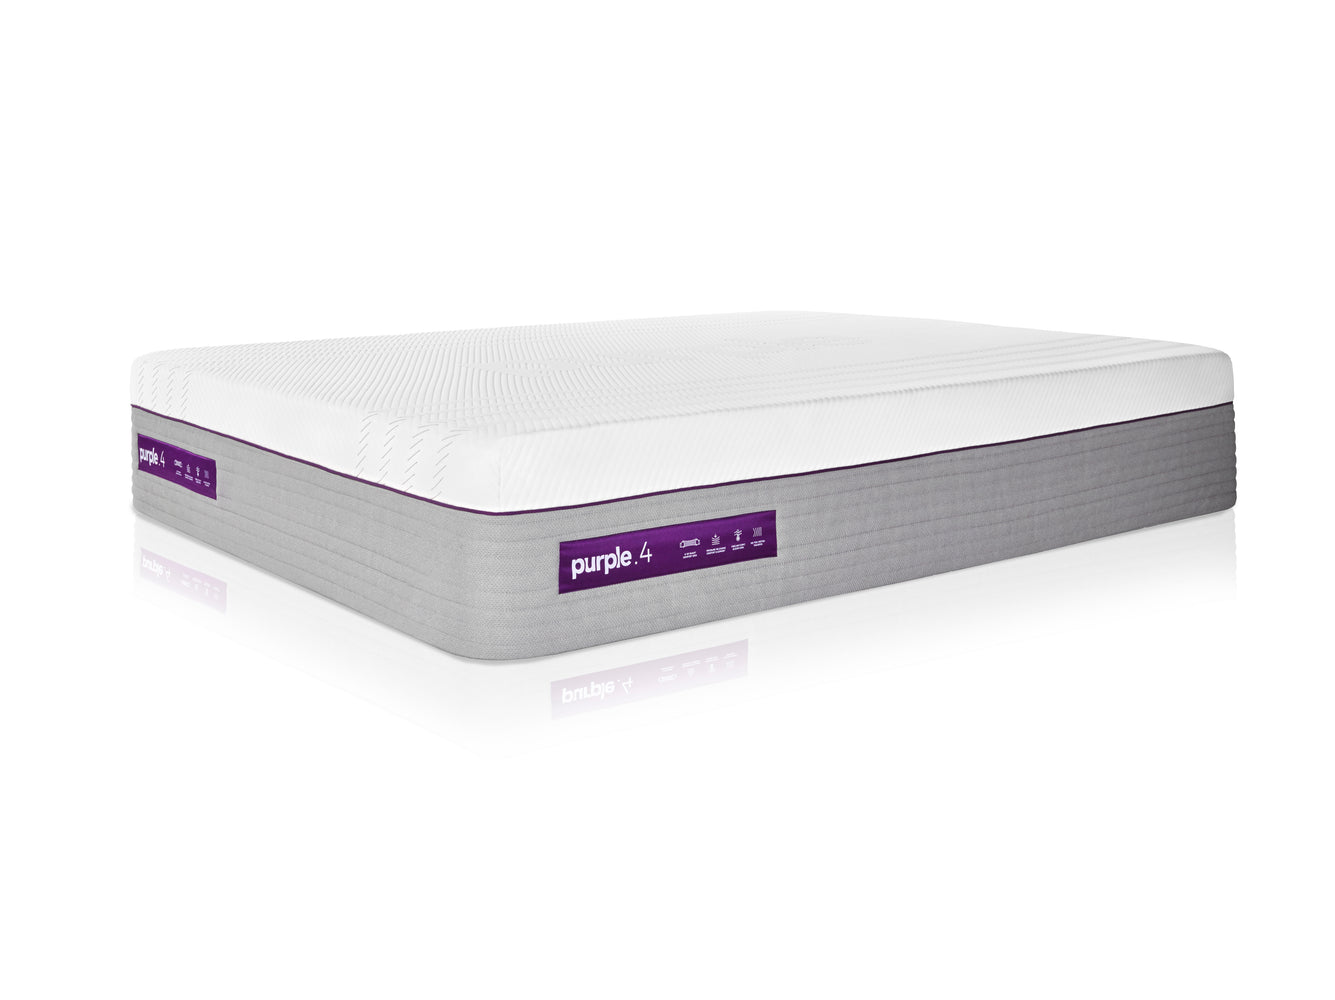 The Purple 4 Hybrid Premier Mattress